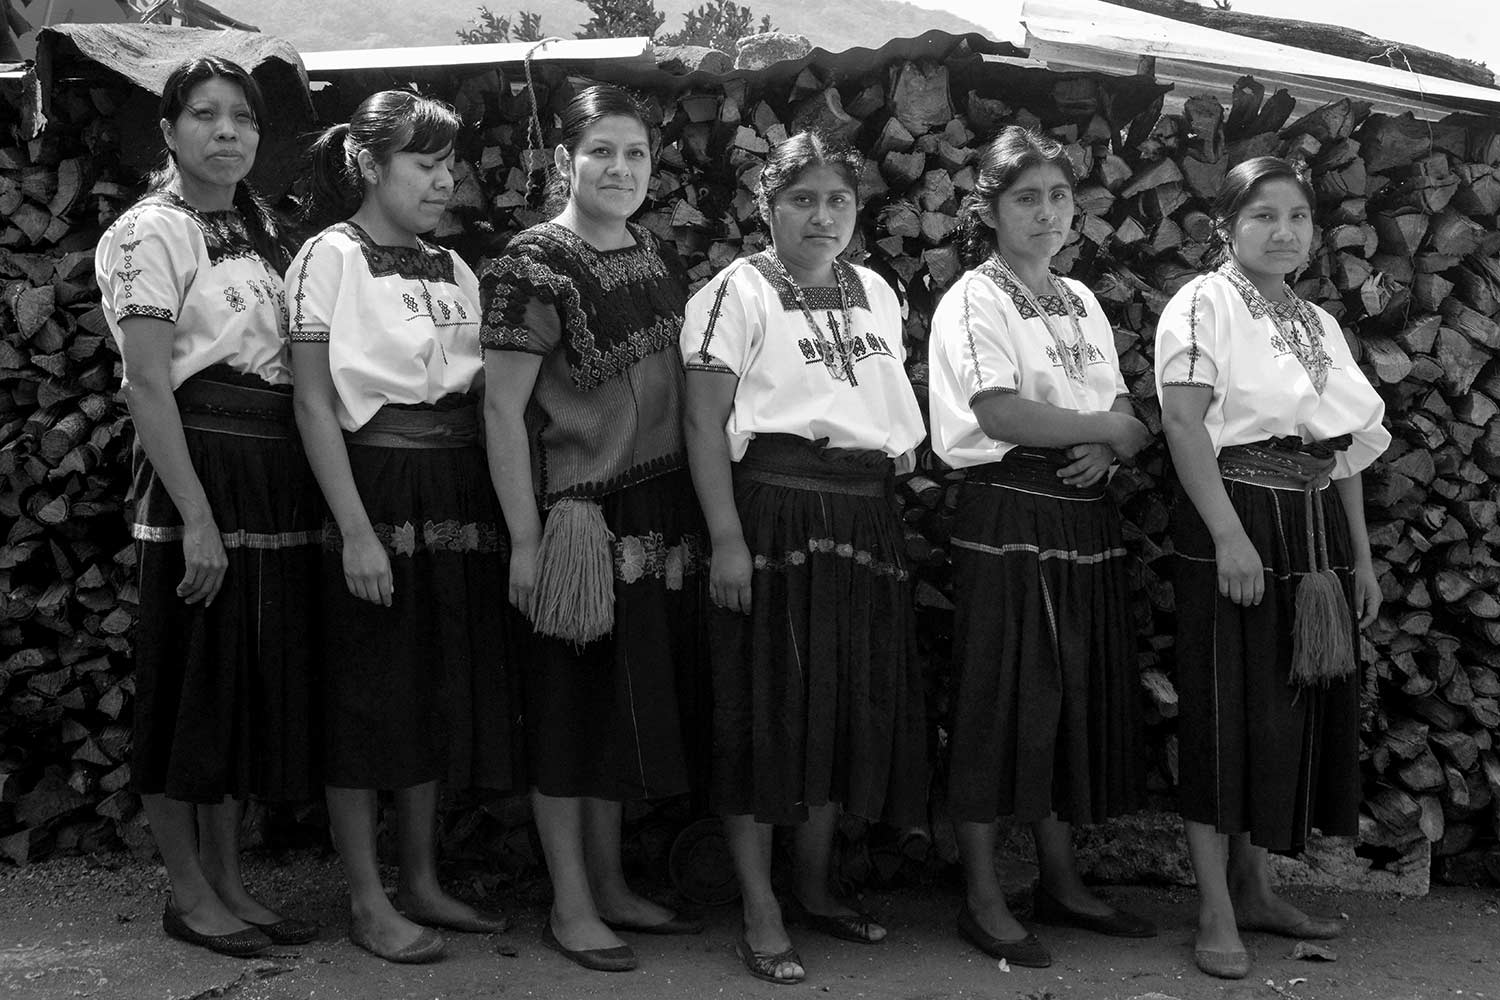 Social Impact - We strive to give opportunities to capable women and preserve Mexican heritage. By partnering with artisans across multiple villages, we are not only supporting their livelihood, we are also reviving ancestral techniques that are near extinction.